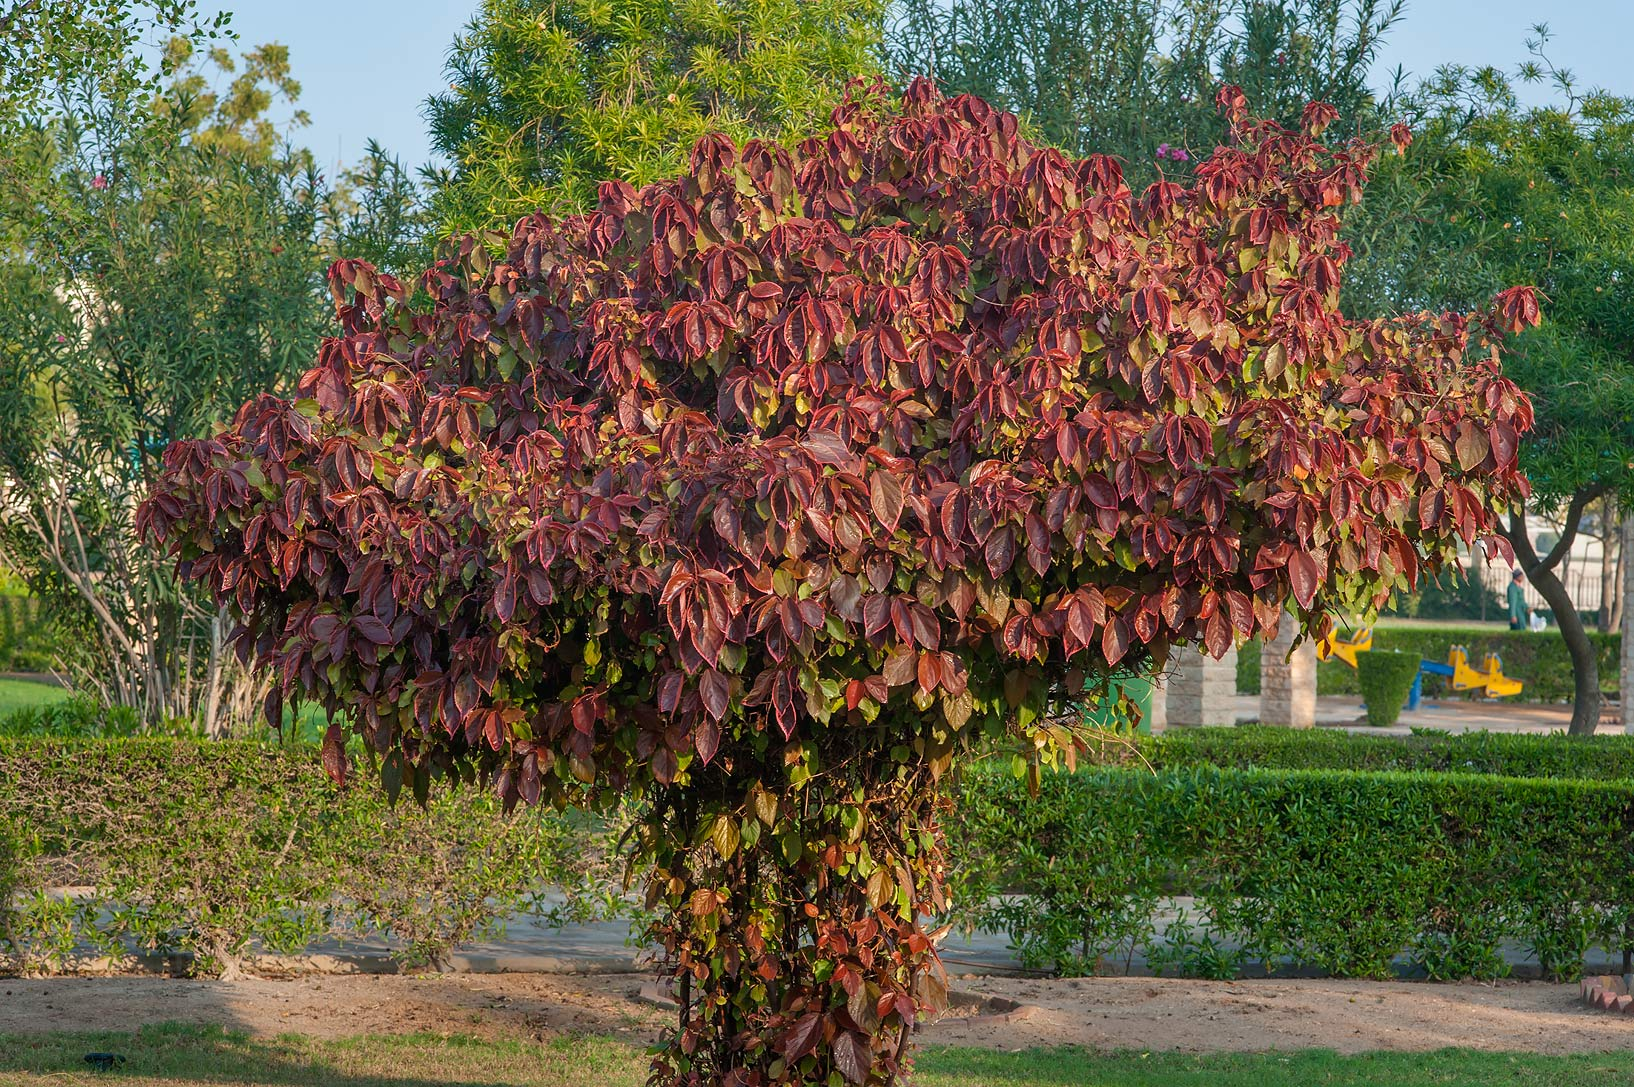 Acalypha wilkesiana shaped as a tree in Al Shamal City Park. Ruwais, Northern Qatar